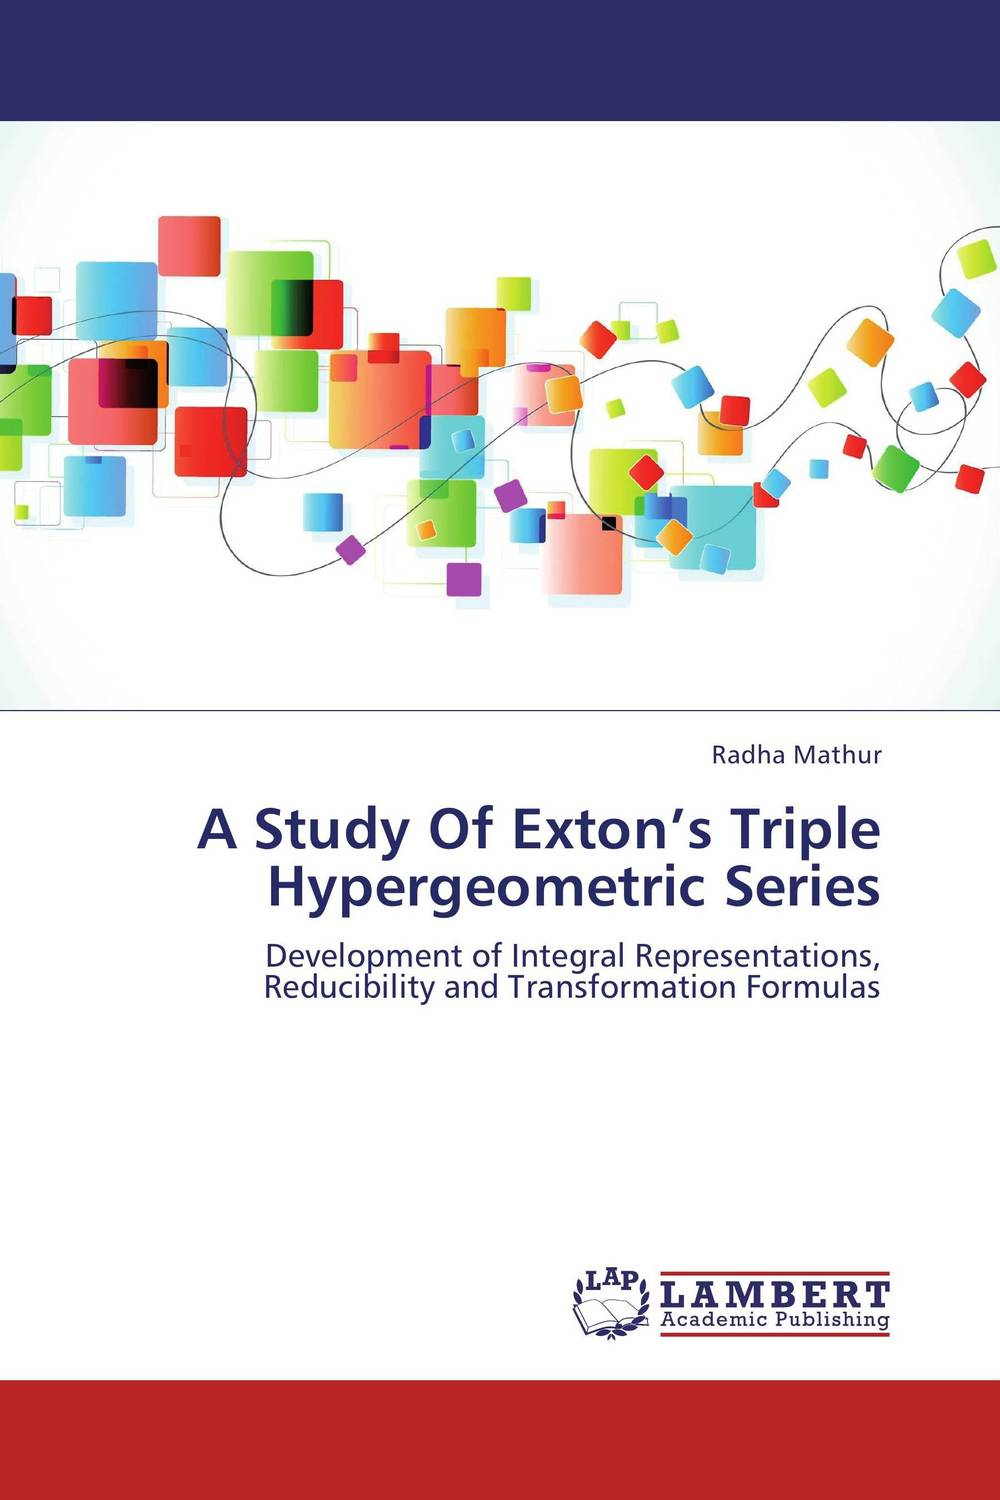 A Study Of Exton's Triple Hypergeometric Series viruses cell transformation and cancer 5